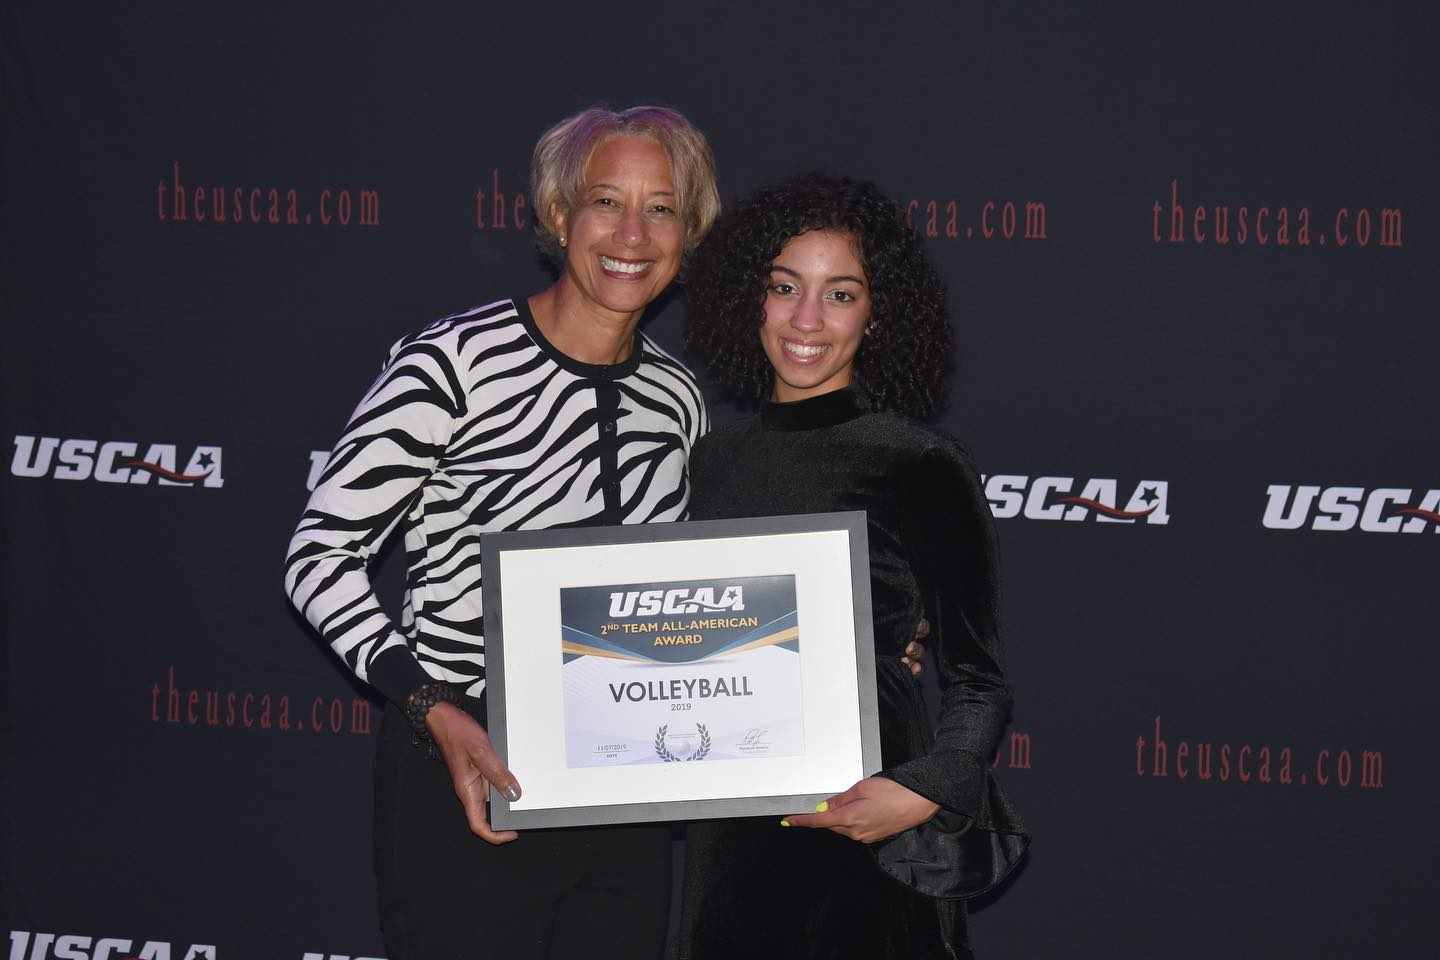 Women's Volleyball player Andrea Romero receiving All american second team Award